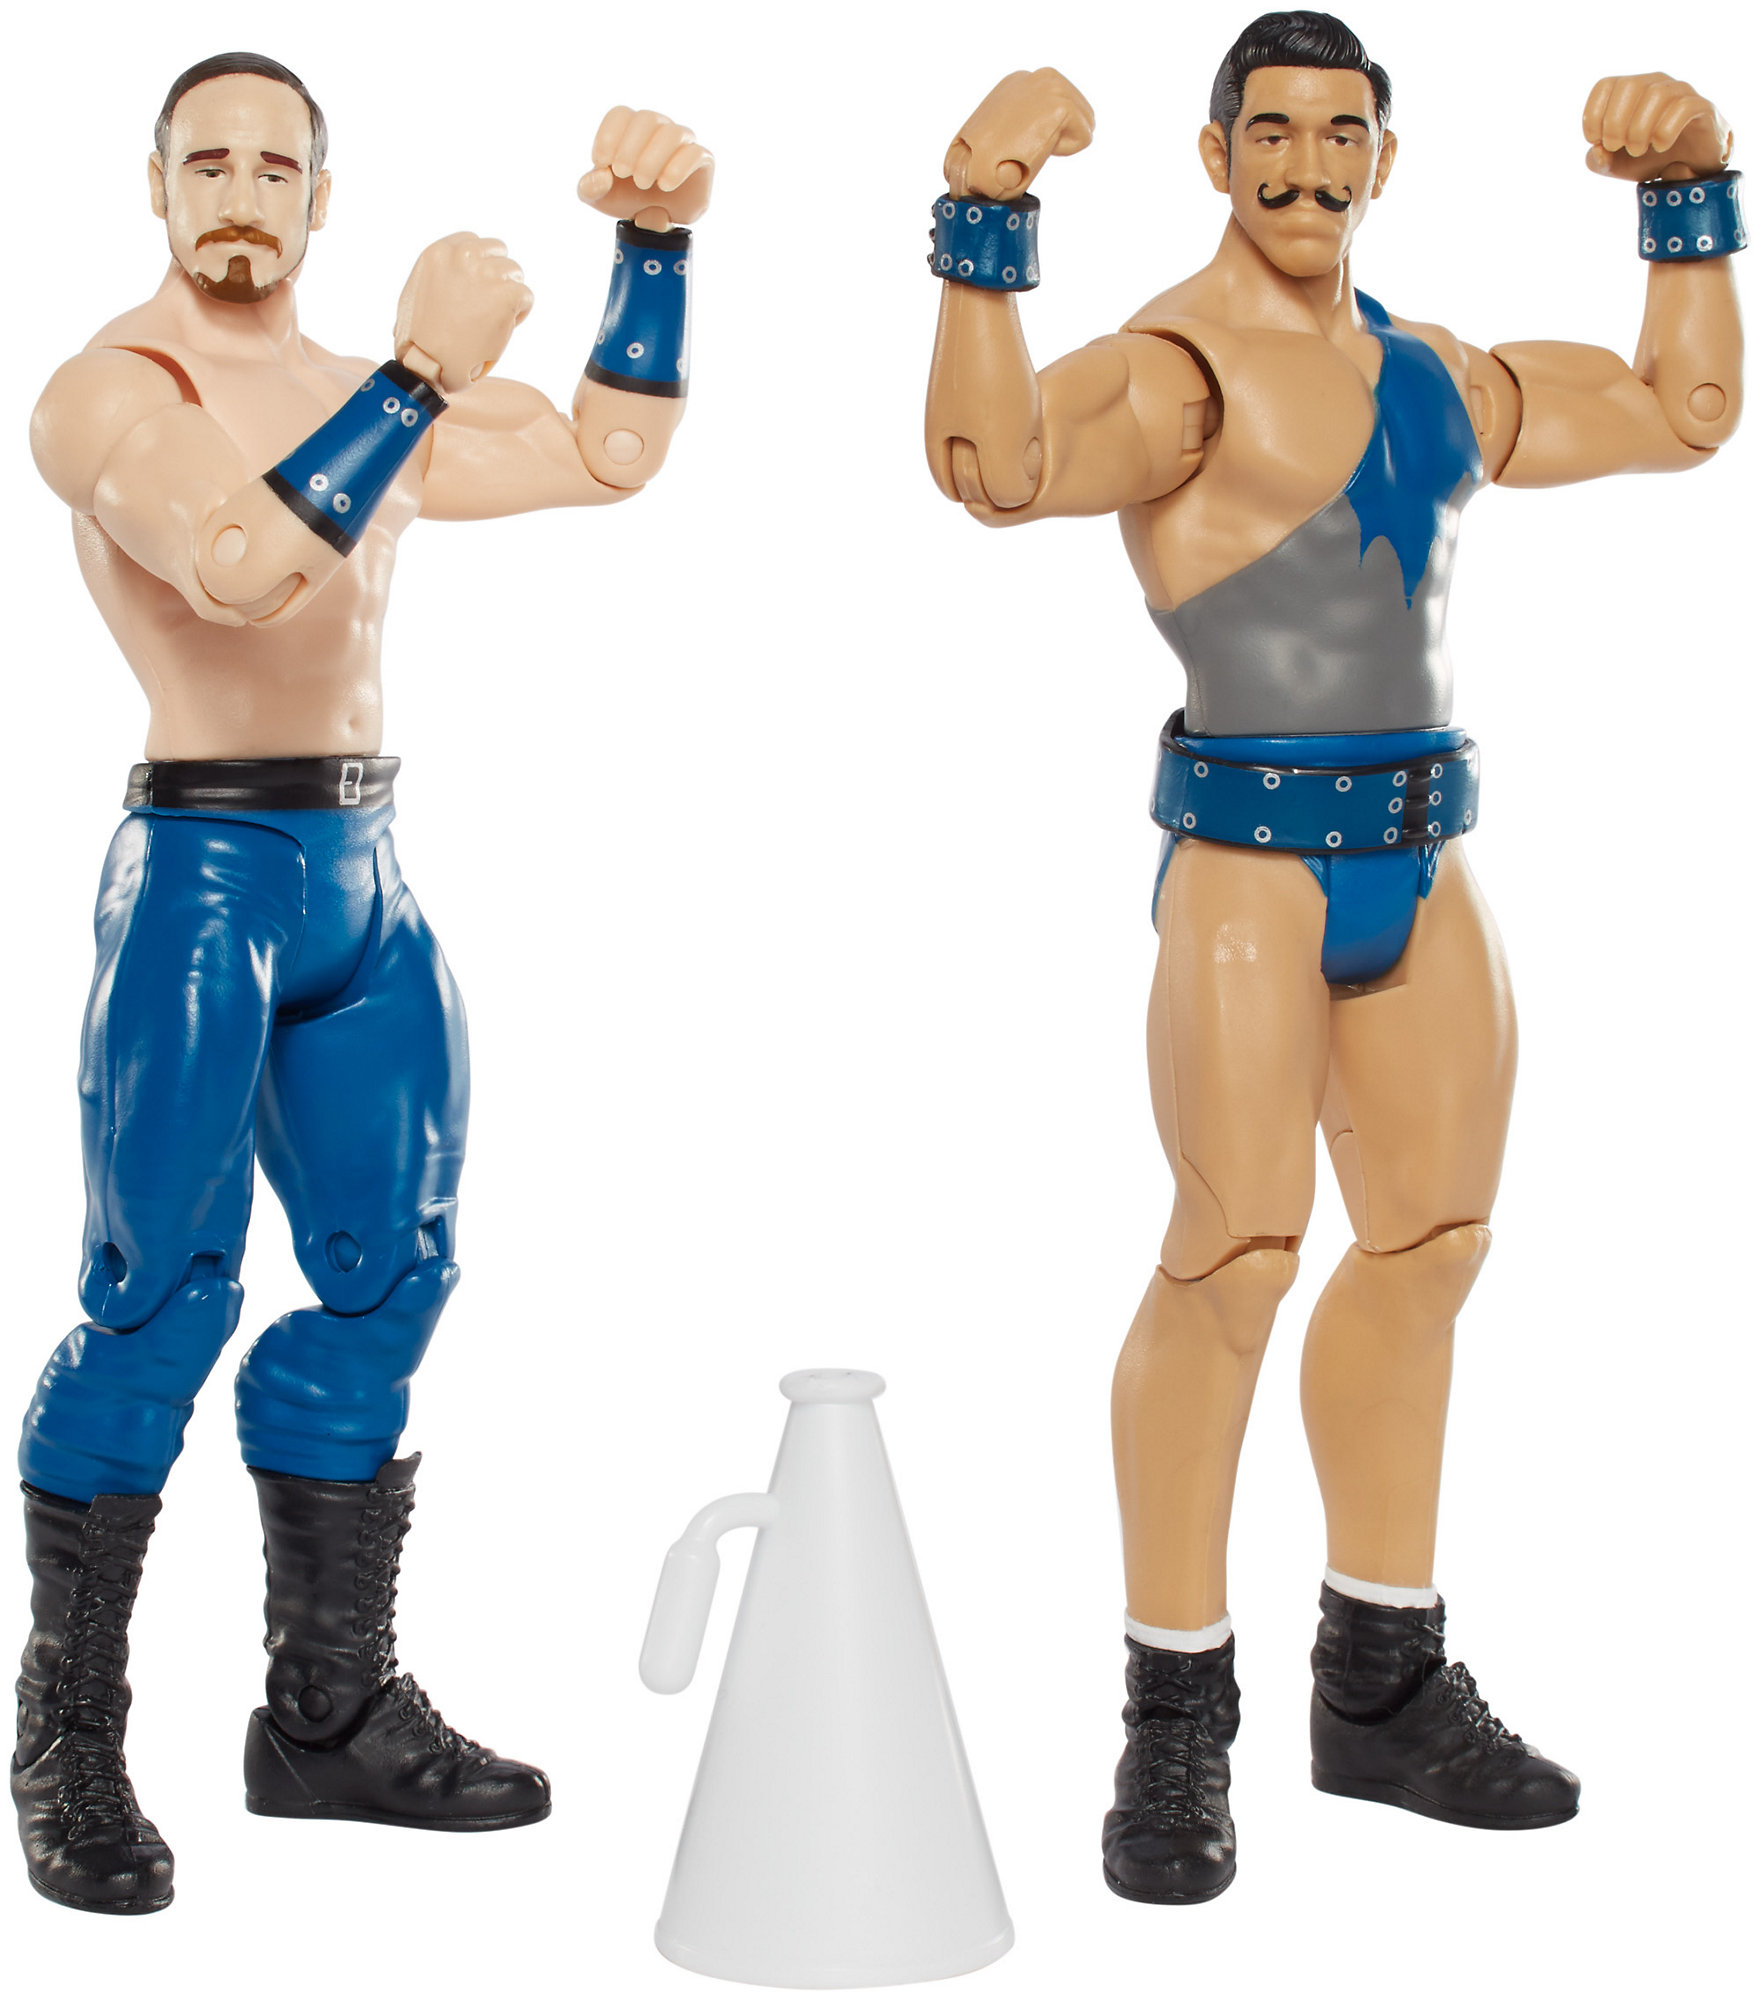 WWE Aiden English and Simon Gotch Figure (2 Pack) by Mattel